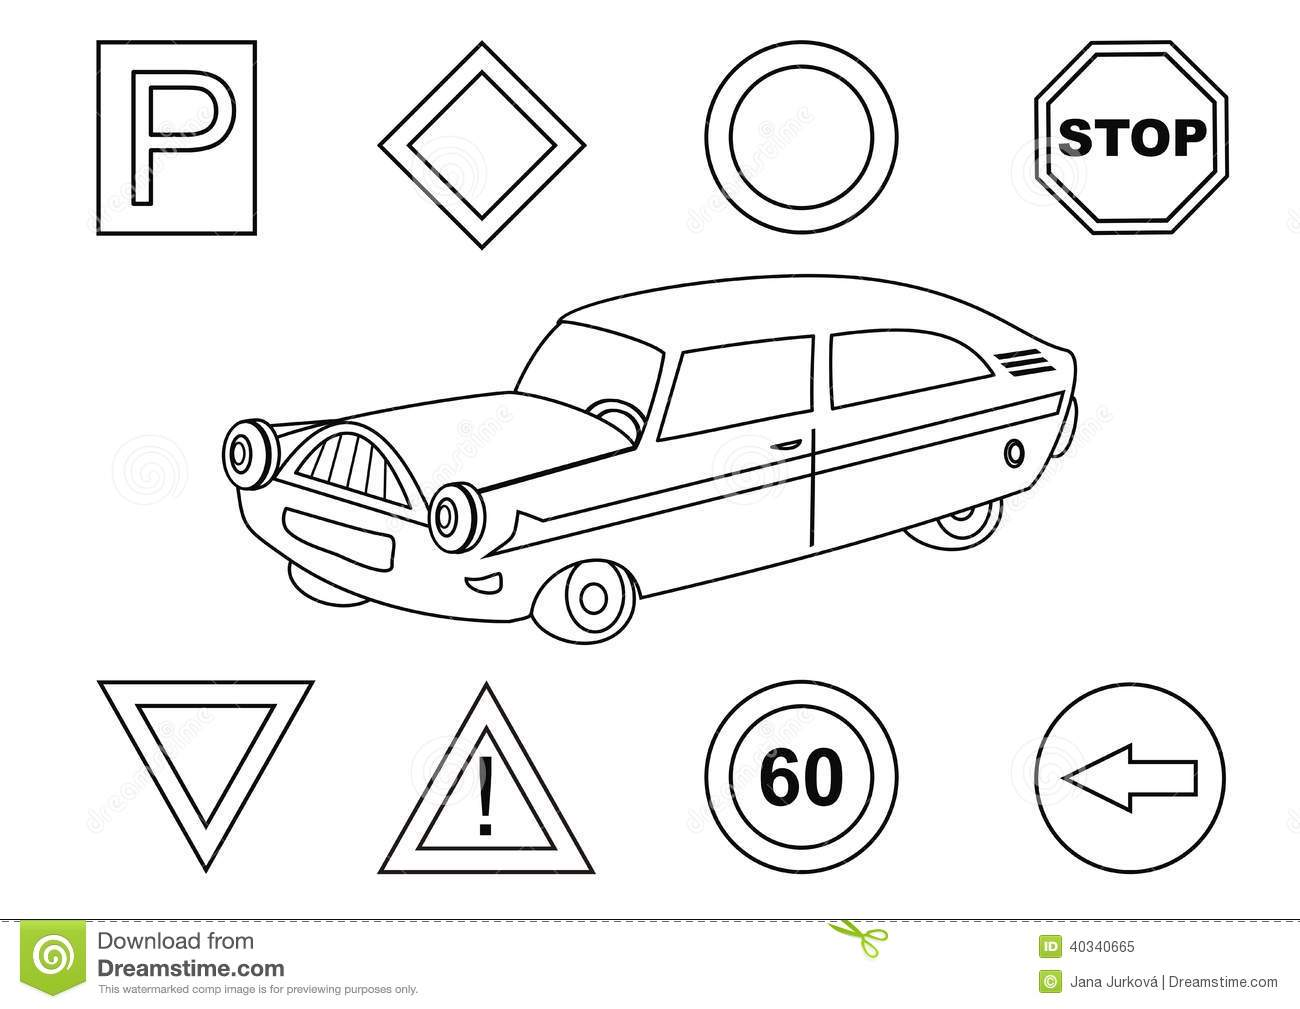 Adult Top Traffic Sign Coloring Pages Images beauty car and traffic signs coloring book stock vector image 40340665 images